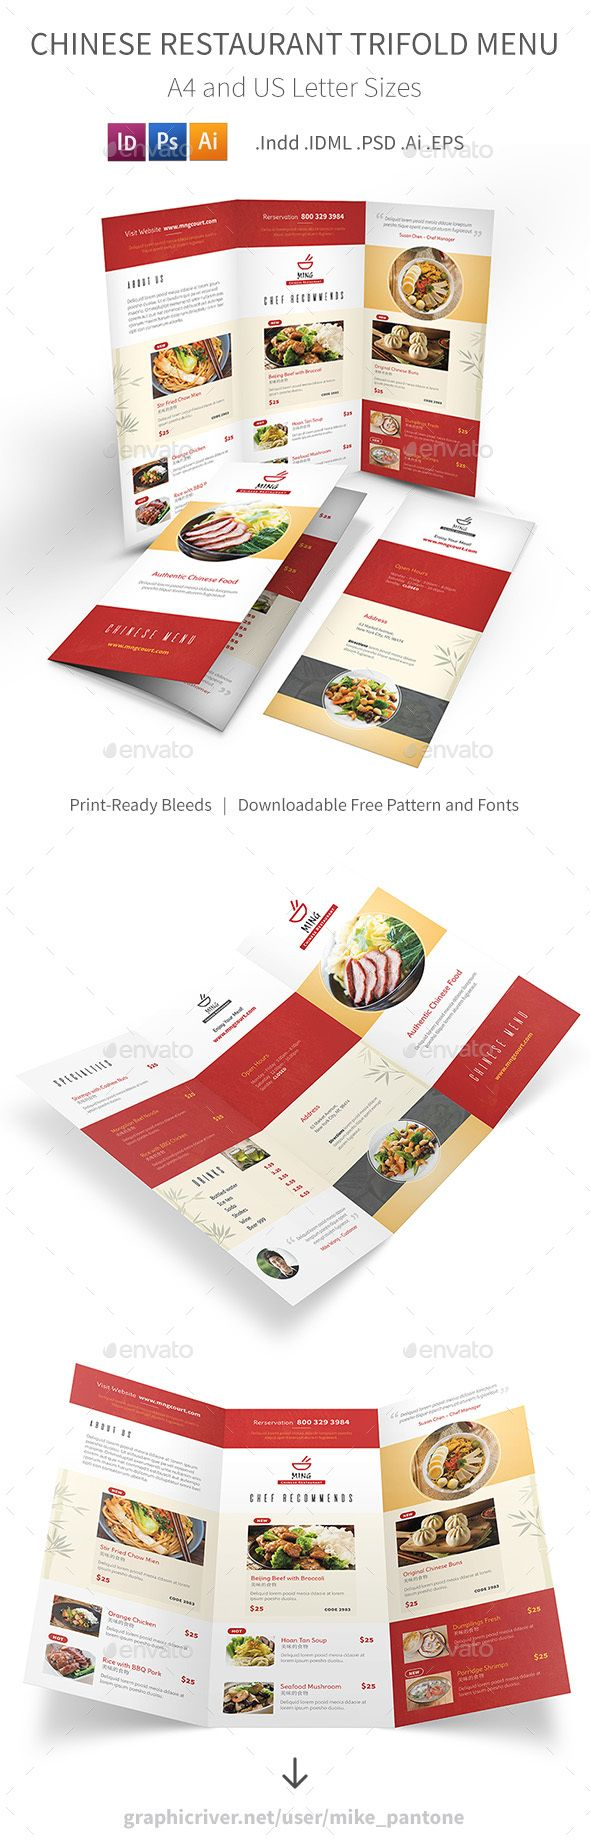 chinese restaurant trifold menu 2 menu card pinterest menu